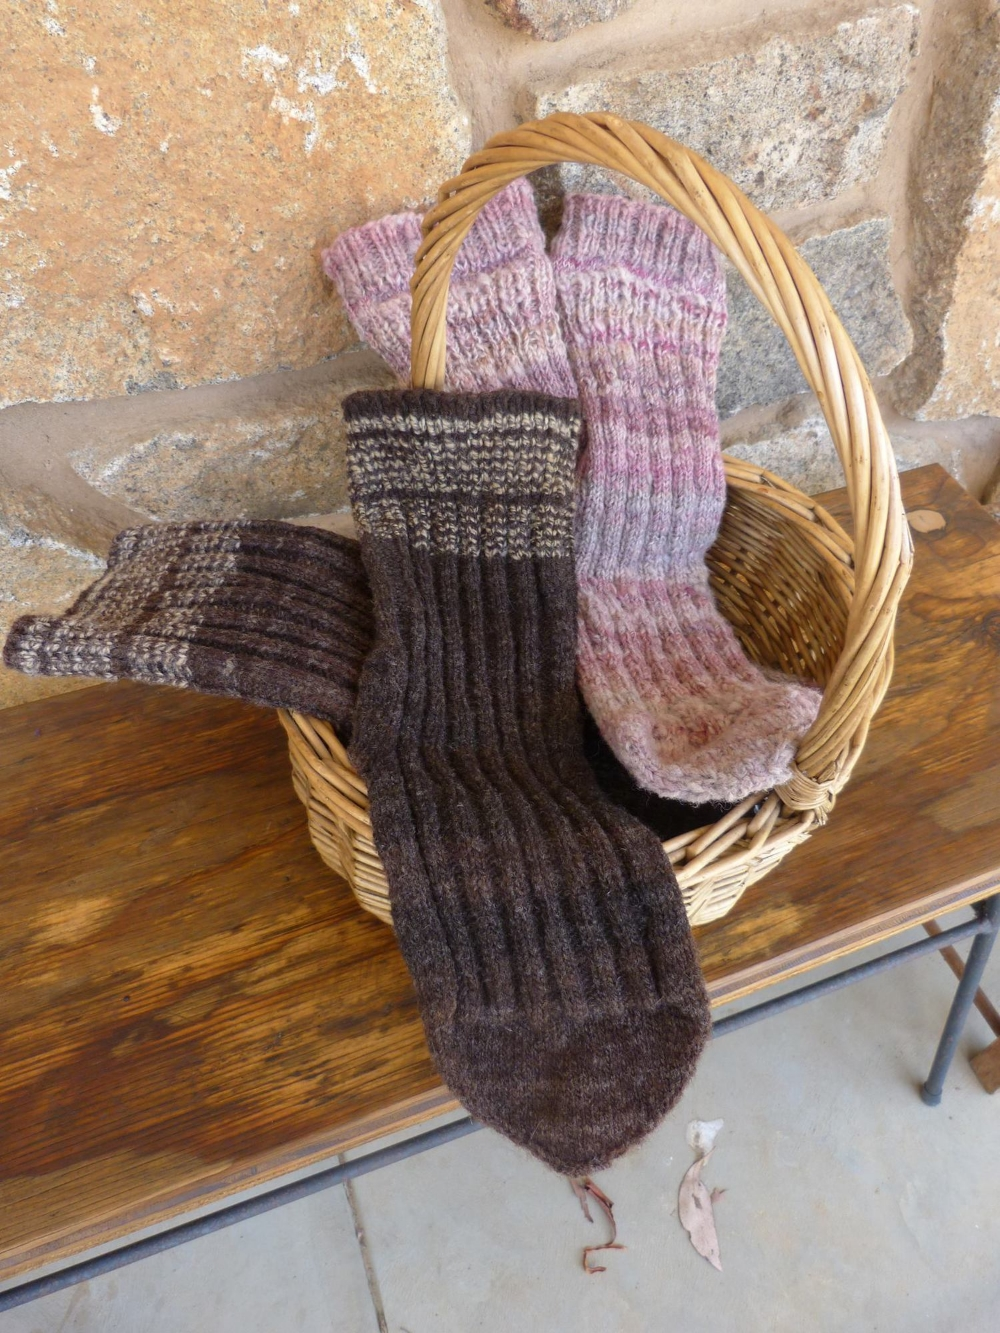 """Shropsocks"" are bouncy, squishy and oh so warm! Marilyn is happy to organise some fibre so you can make your own."